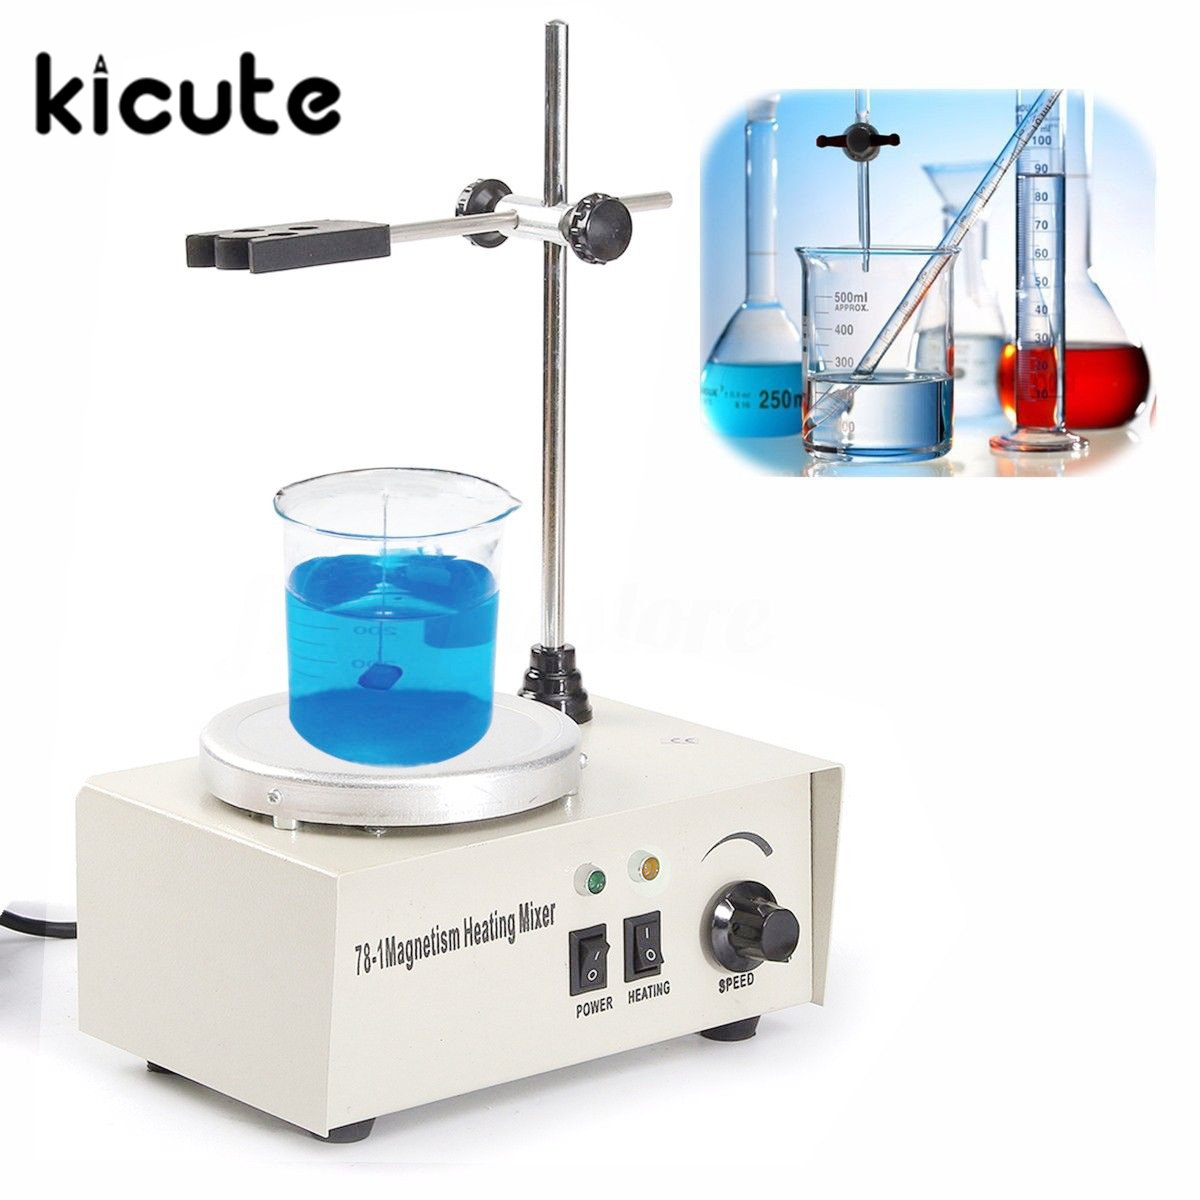 KiCute 1000ML Lab Magnetic Stirrer With Heating Plate Hotplate Mixer 110V Temperature Dispaly Laboratory Heating Equipment 2017 new magnetic stirrer with heating for industry agriculture health and medicine scientific research and college labs